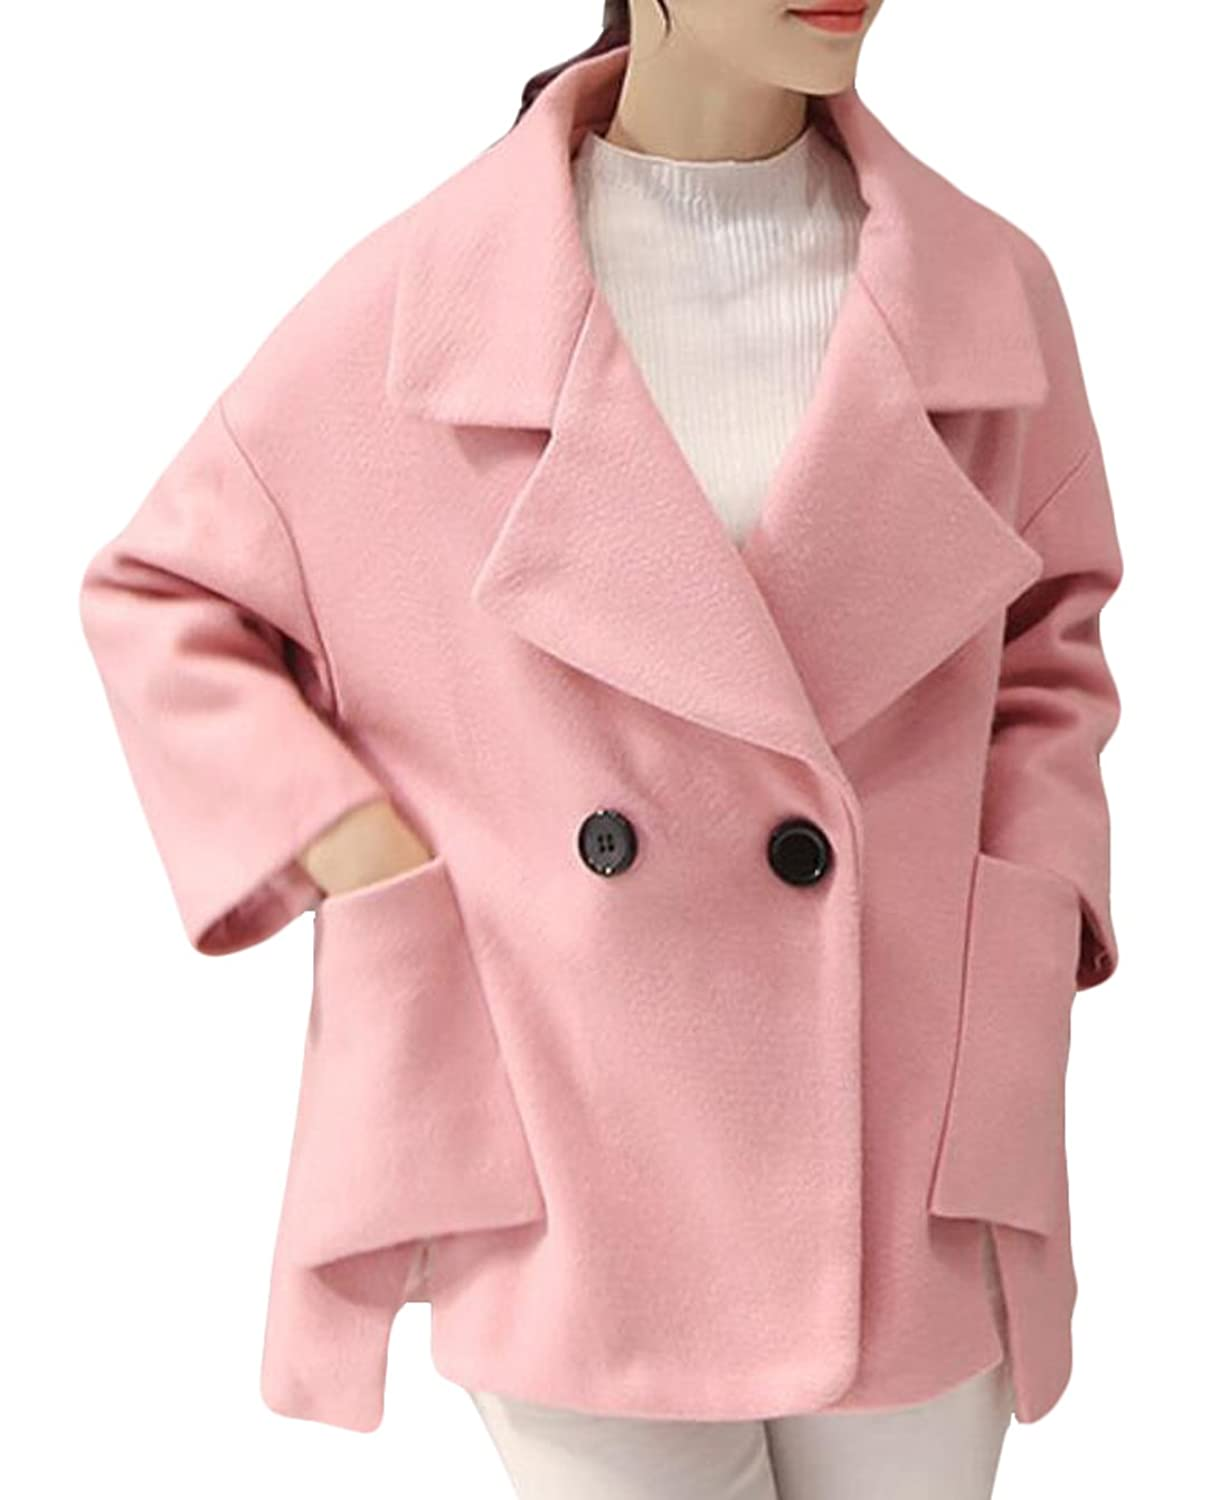 Acquaa Women's Casual Lapel Double-Breasted Short Wool Coat